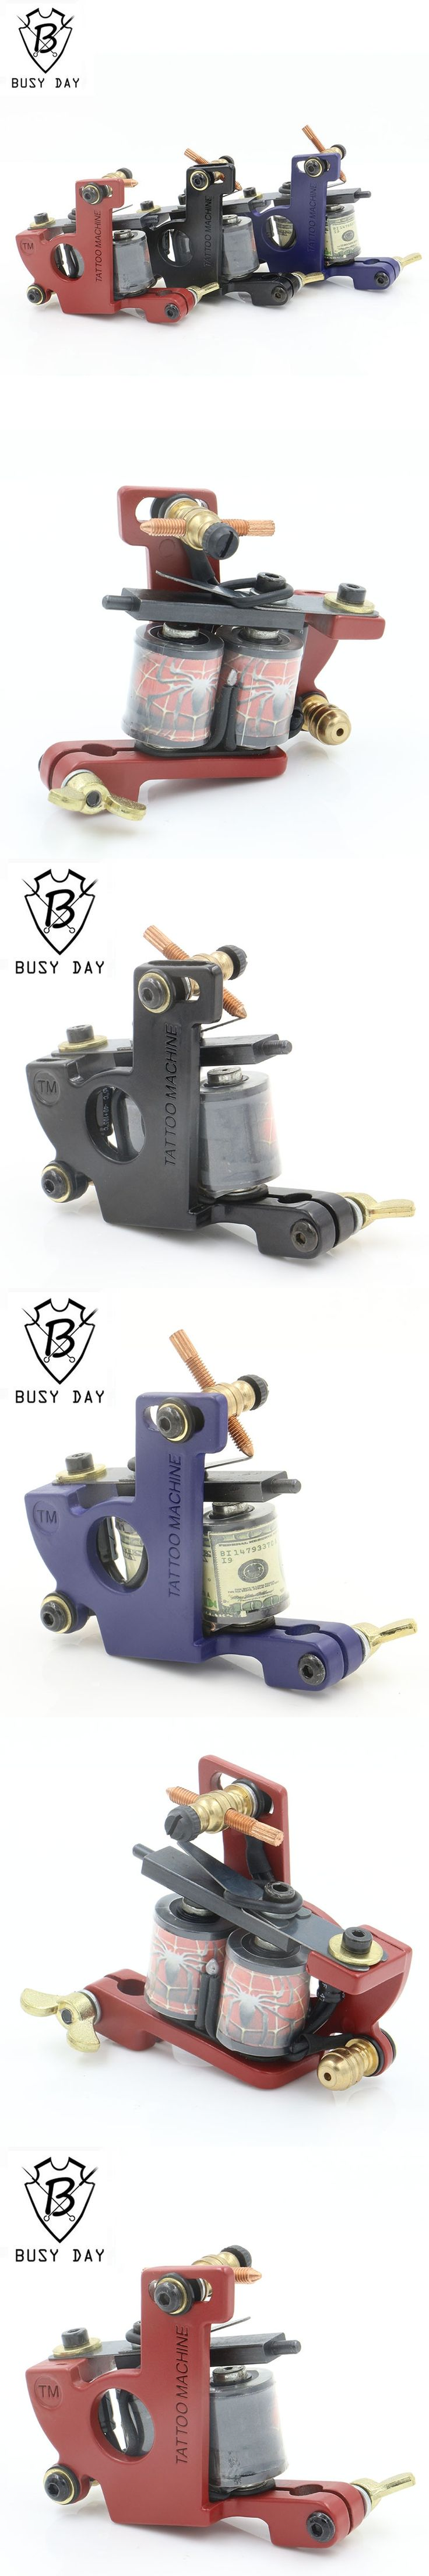 2016 New Coil Tattoo Machine 10 Wraps Professional Three Color Steel tattoo gun machine For Liner & Shader For Free Shipping